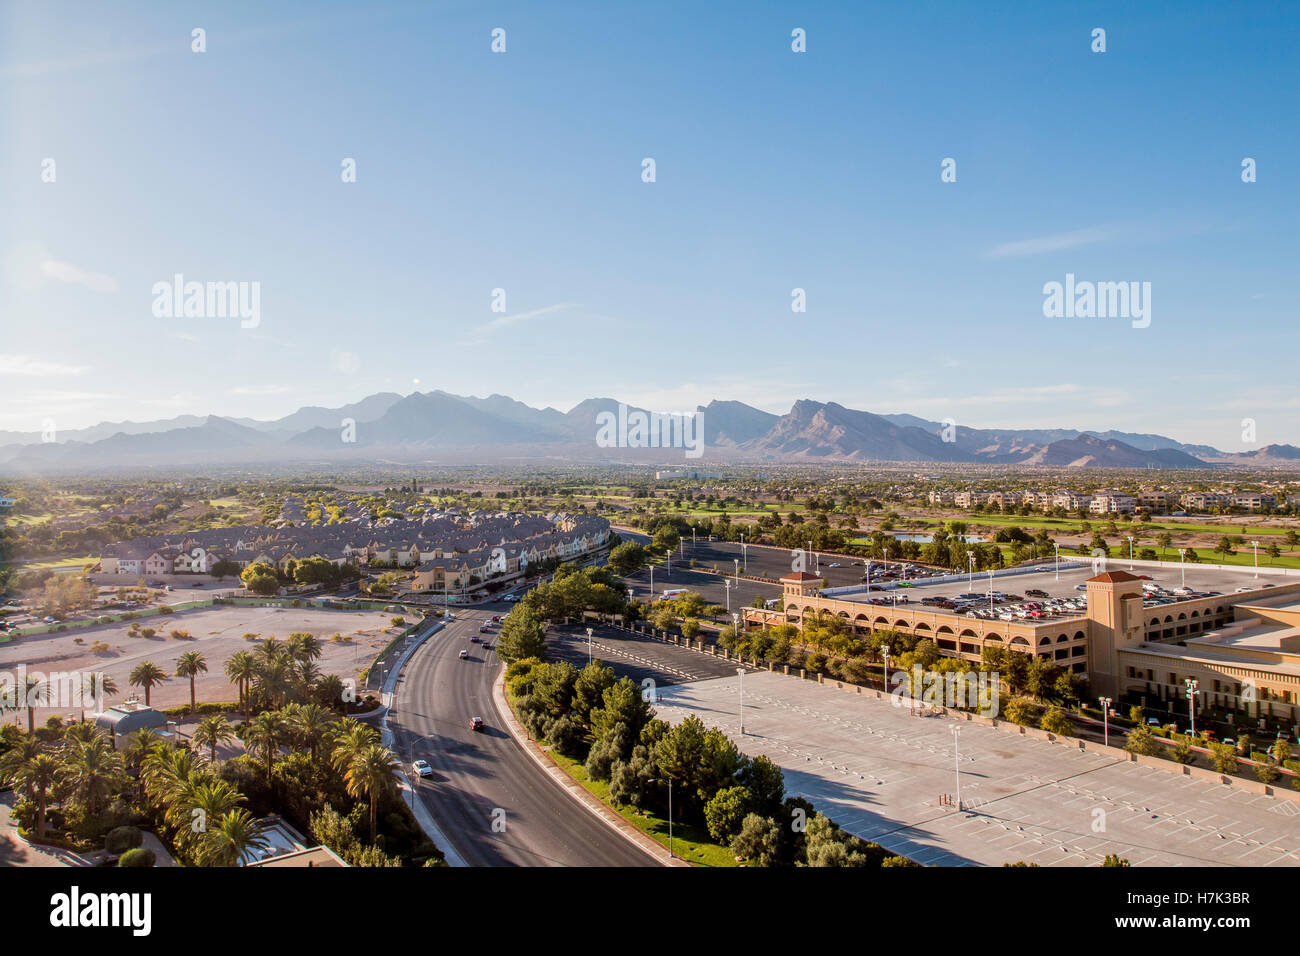 Wide angle cityscape Las Vegas, Nevada, USA Photo Stock